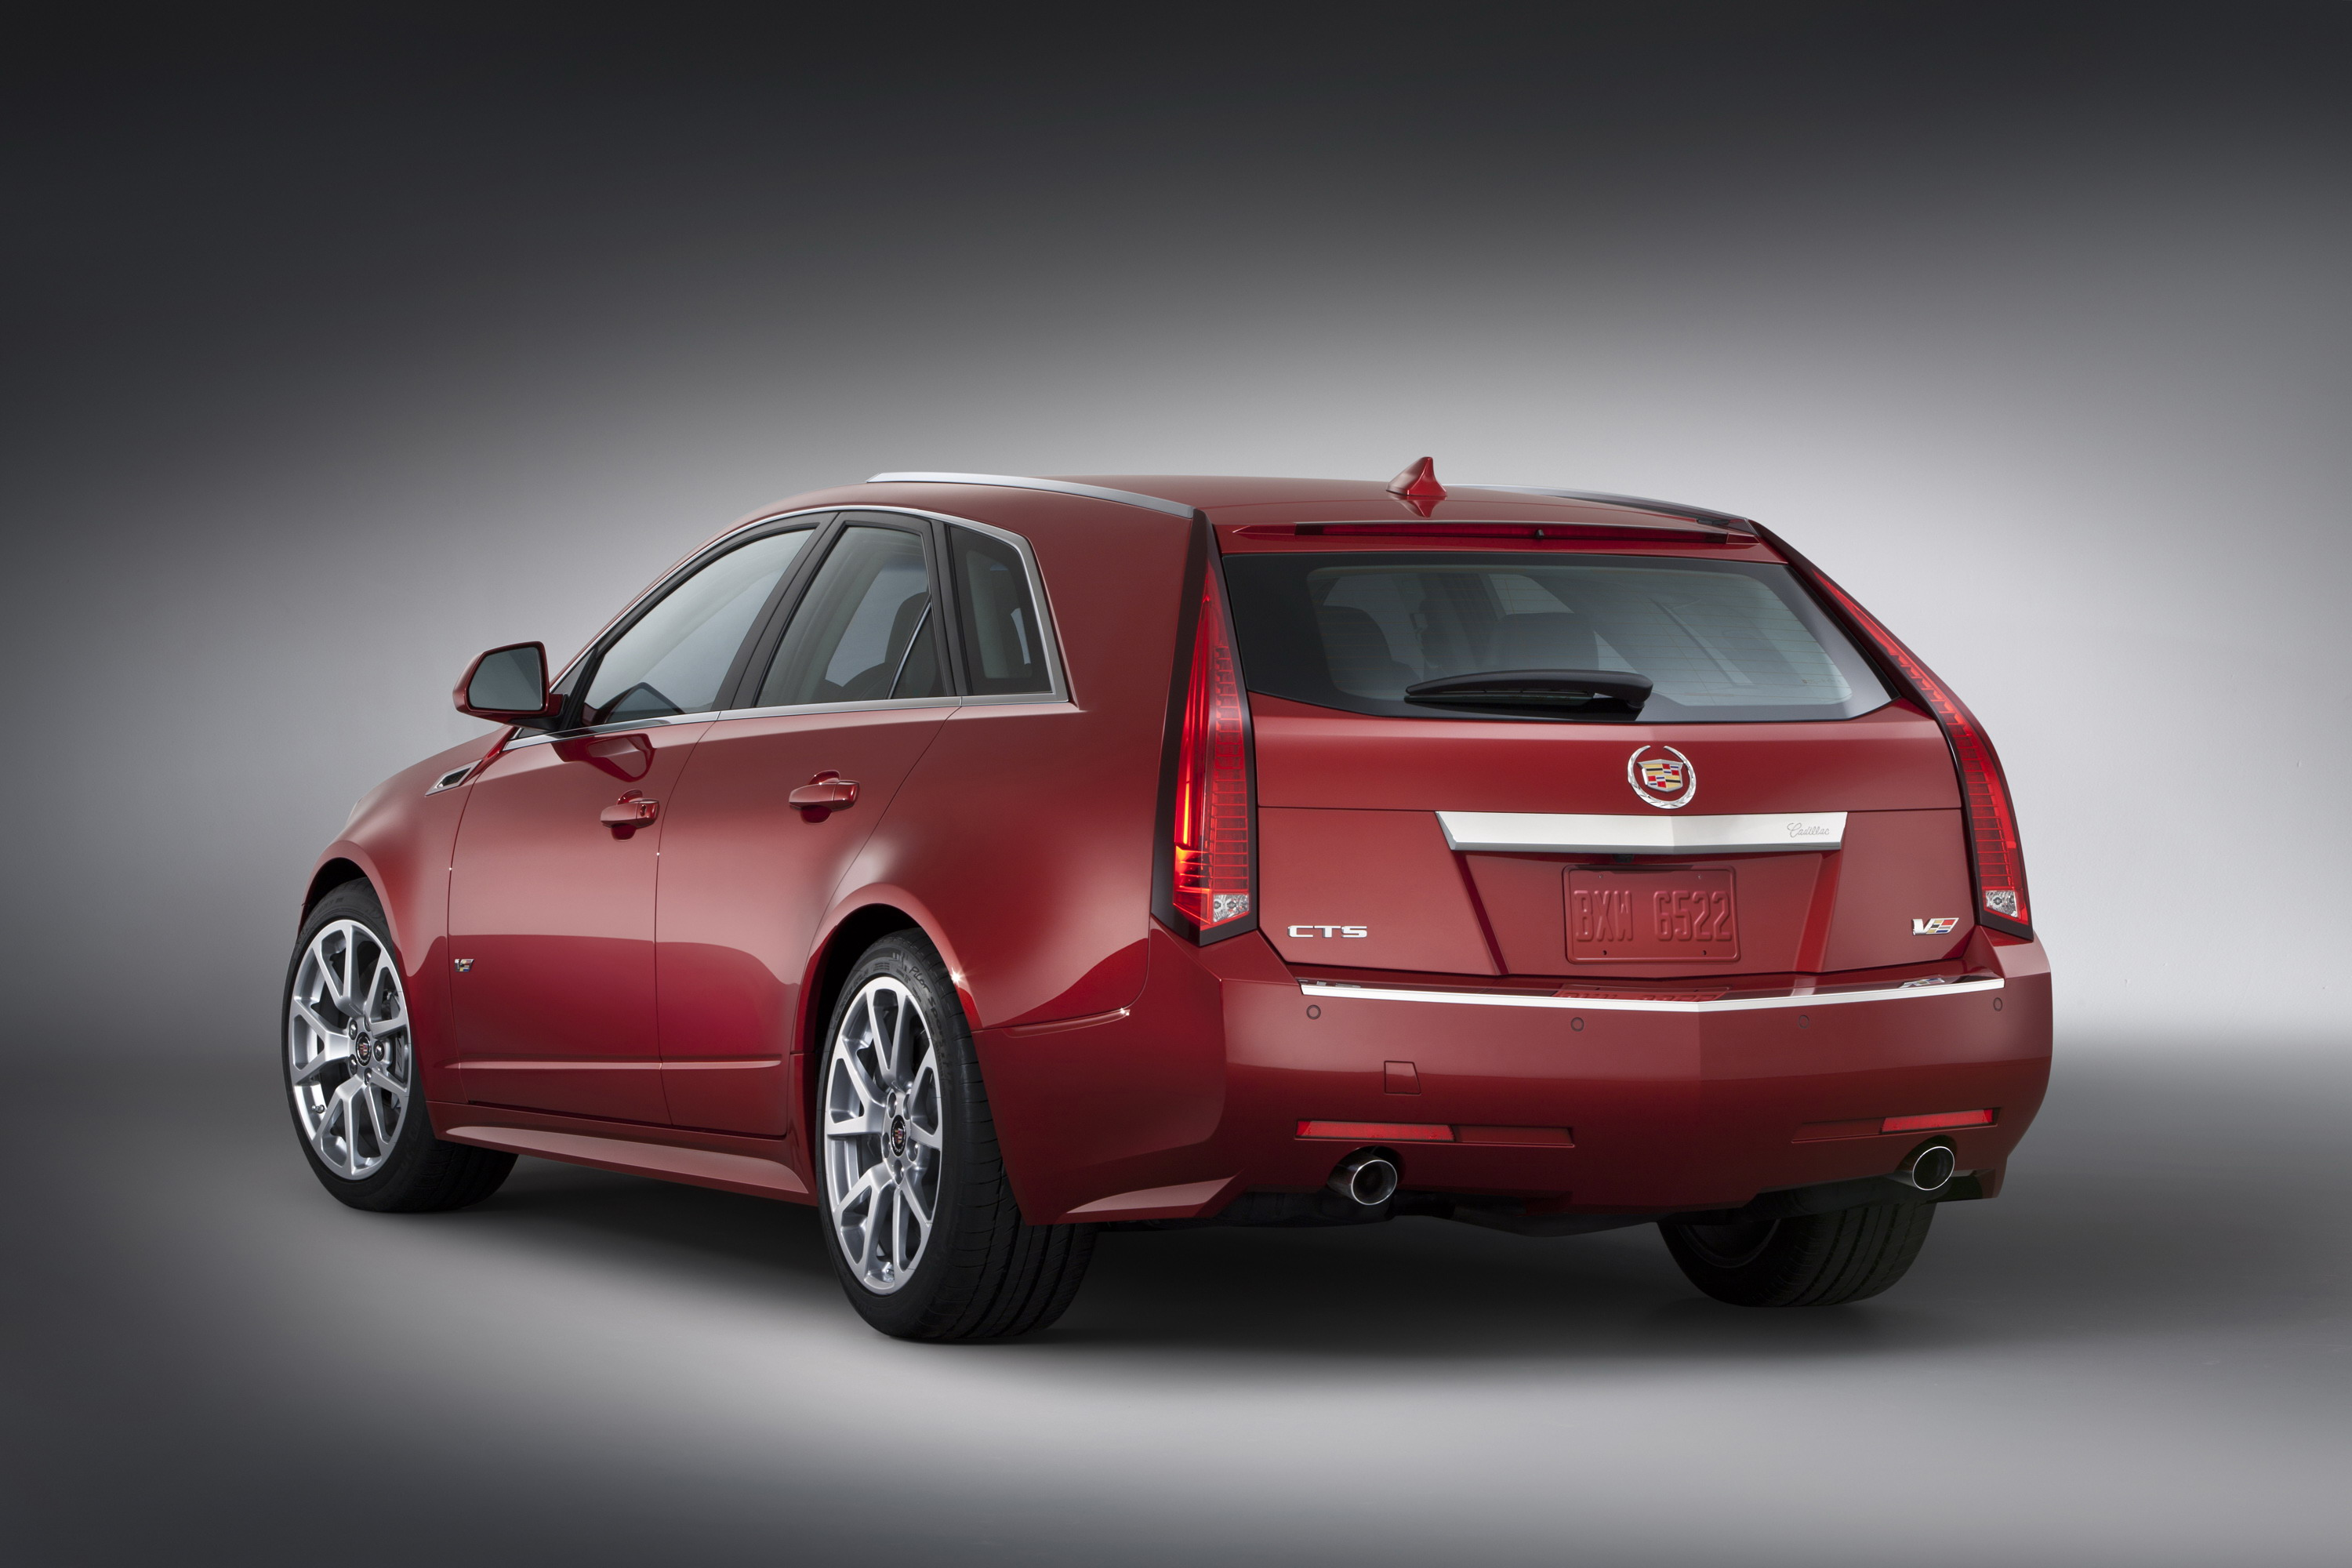 2014 cadillac cts v wagon review top speed. Black Bedroom Furniture Sets. Home Design Ideas